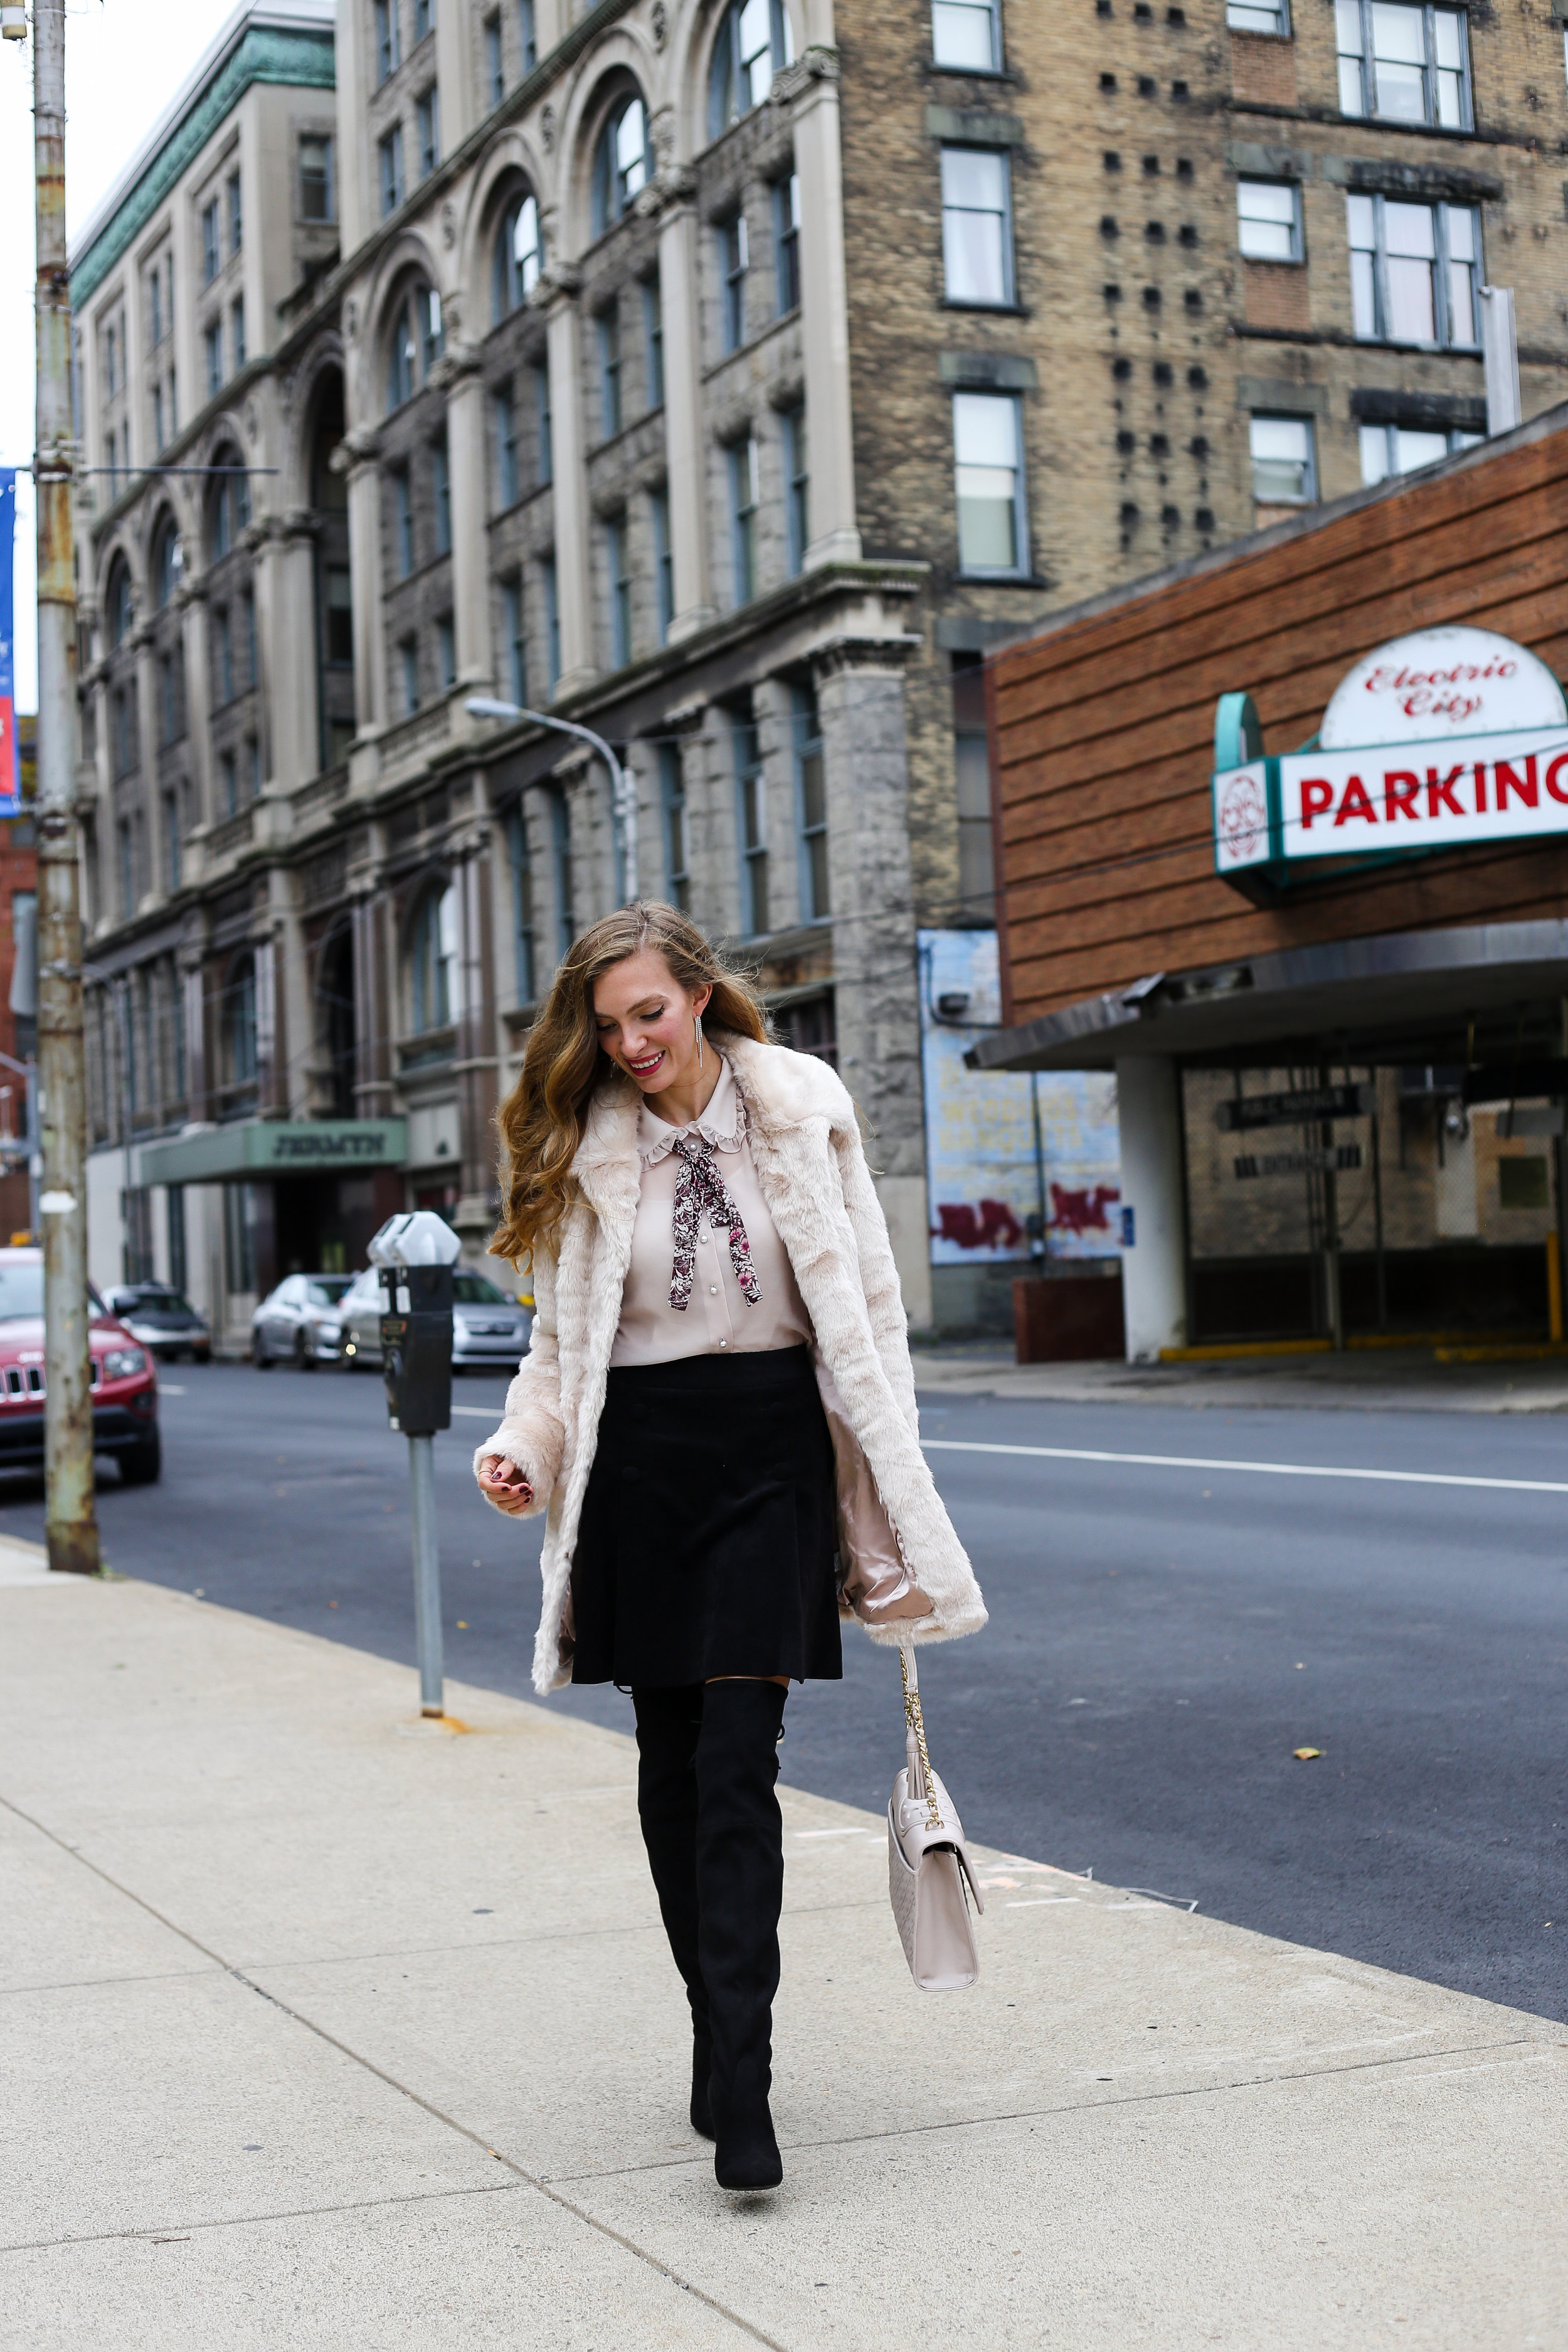 Luxe In The City- Enchanting Elegance